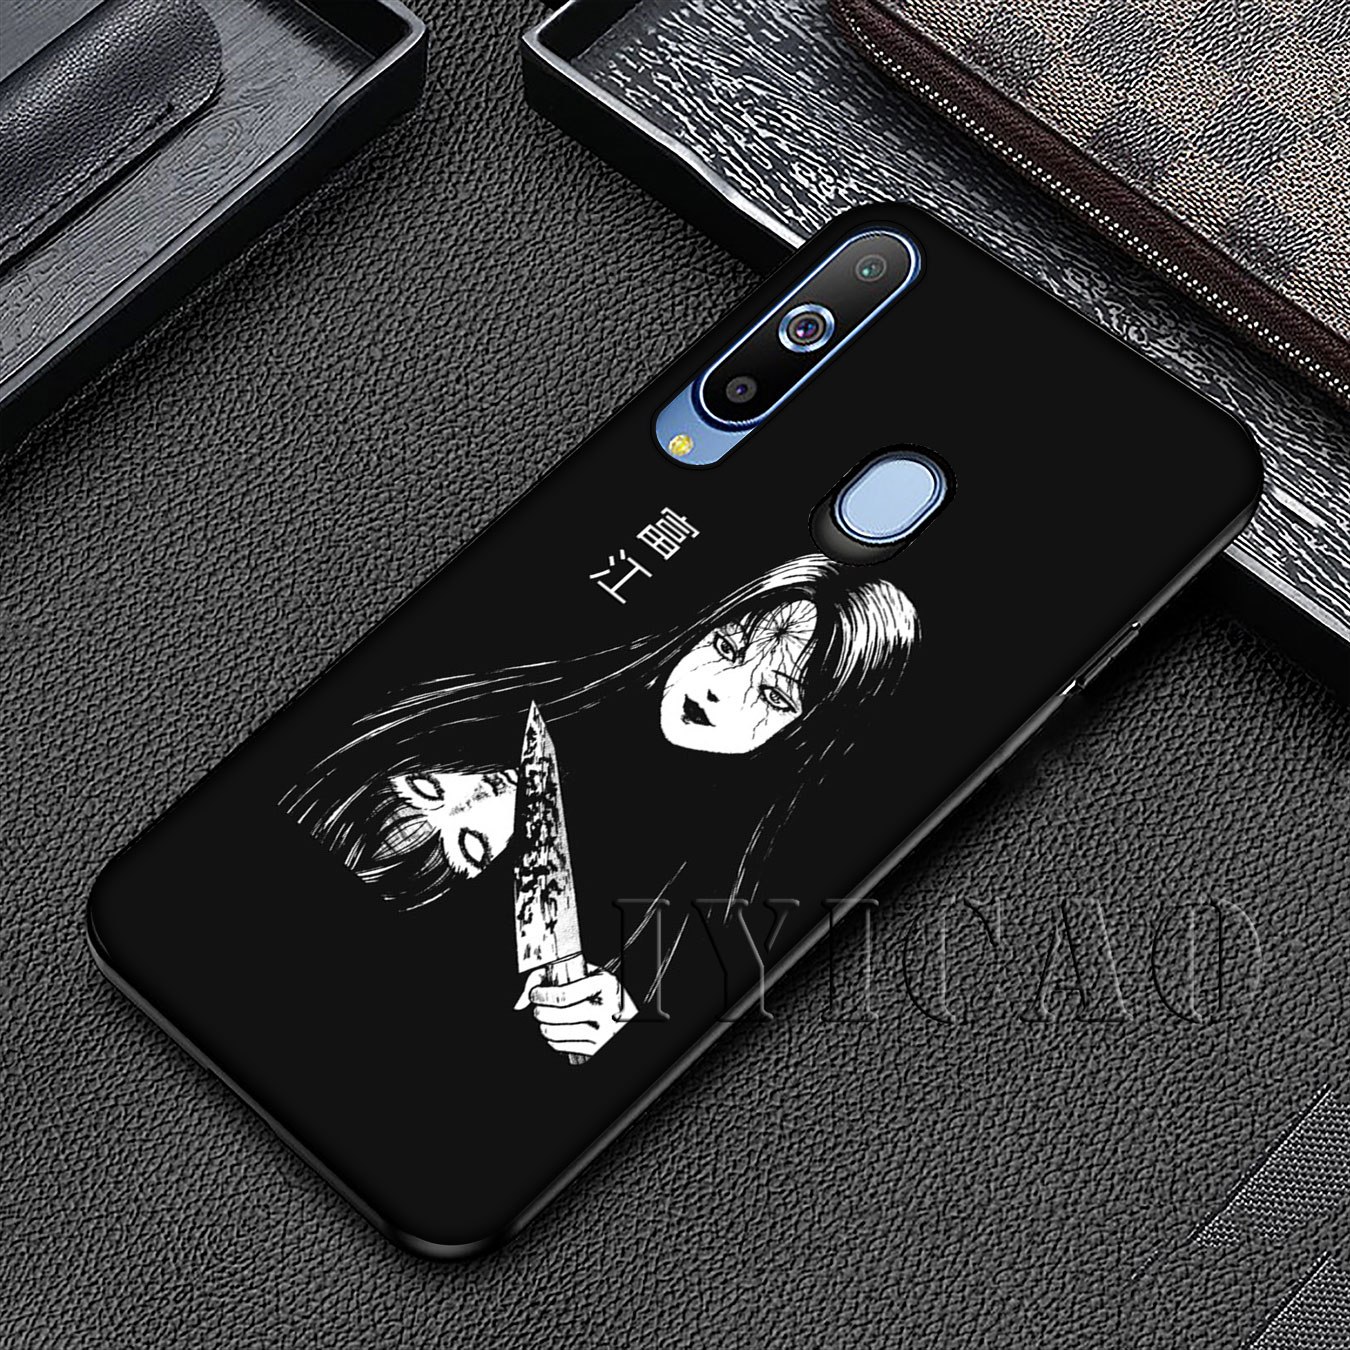 horror comic junji ito Tomie Tees Soft Silicone Case for Samsung Galaxy A70 A60 A50 A40 A30 A20 A10 A50S A40S A30S A20S A10S in Fitted Cases from Cellphones Telecommunications